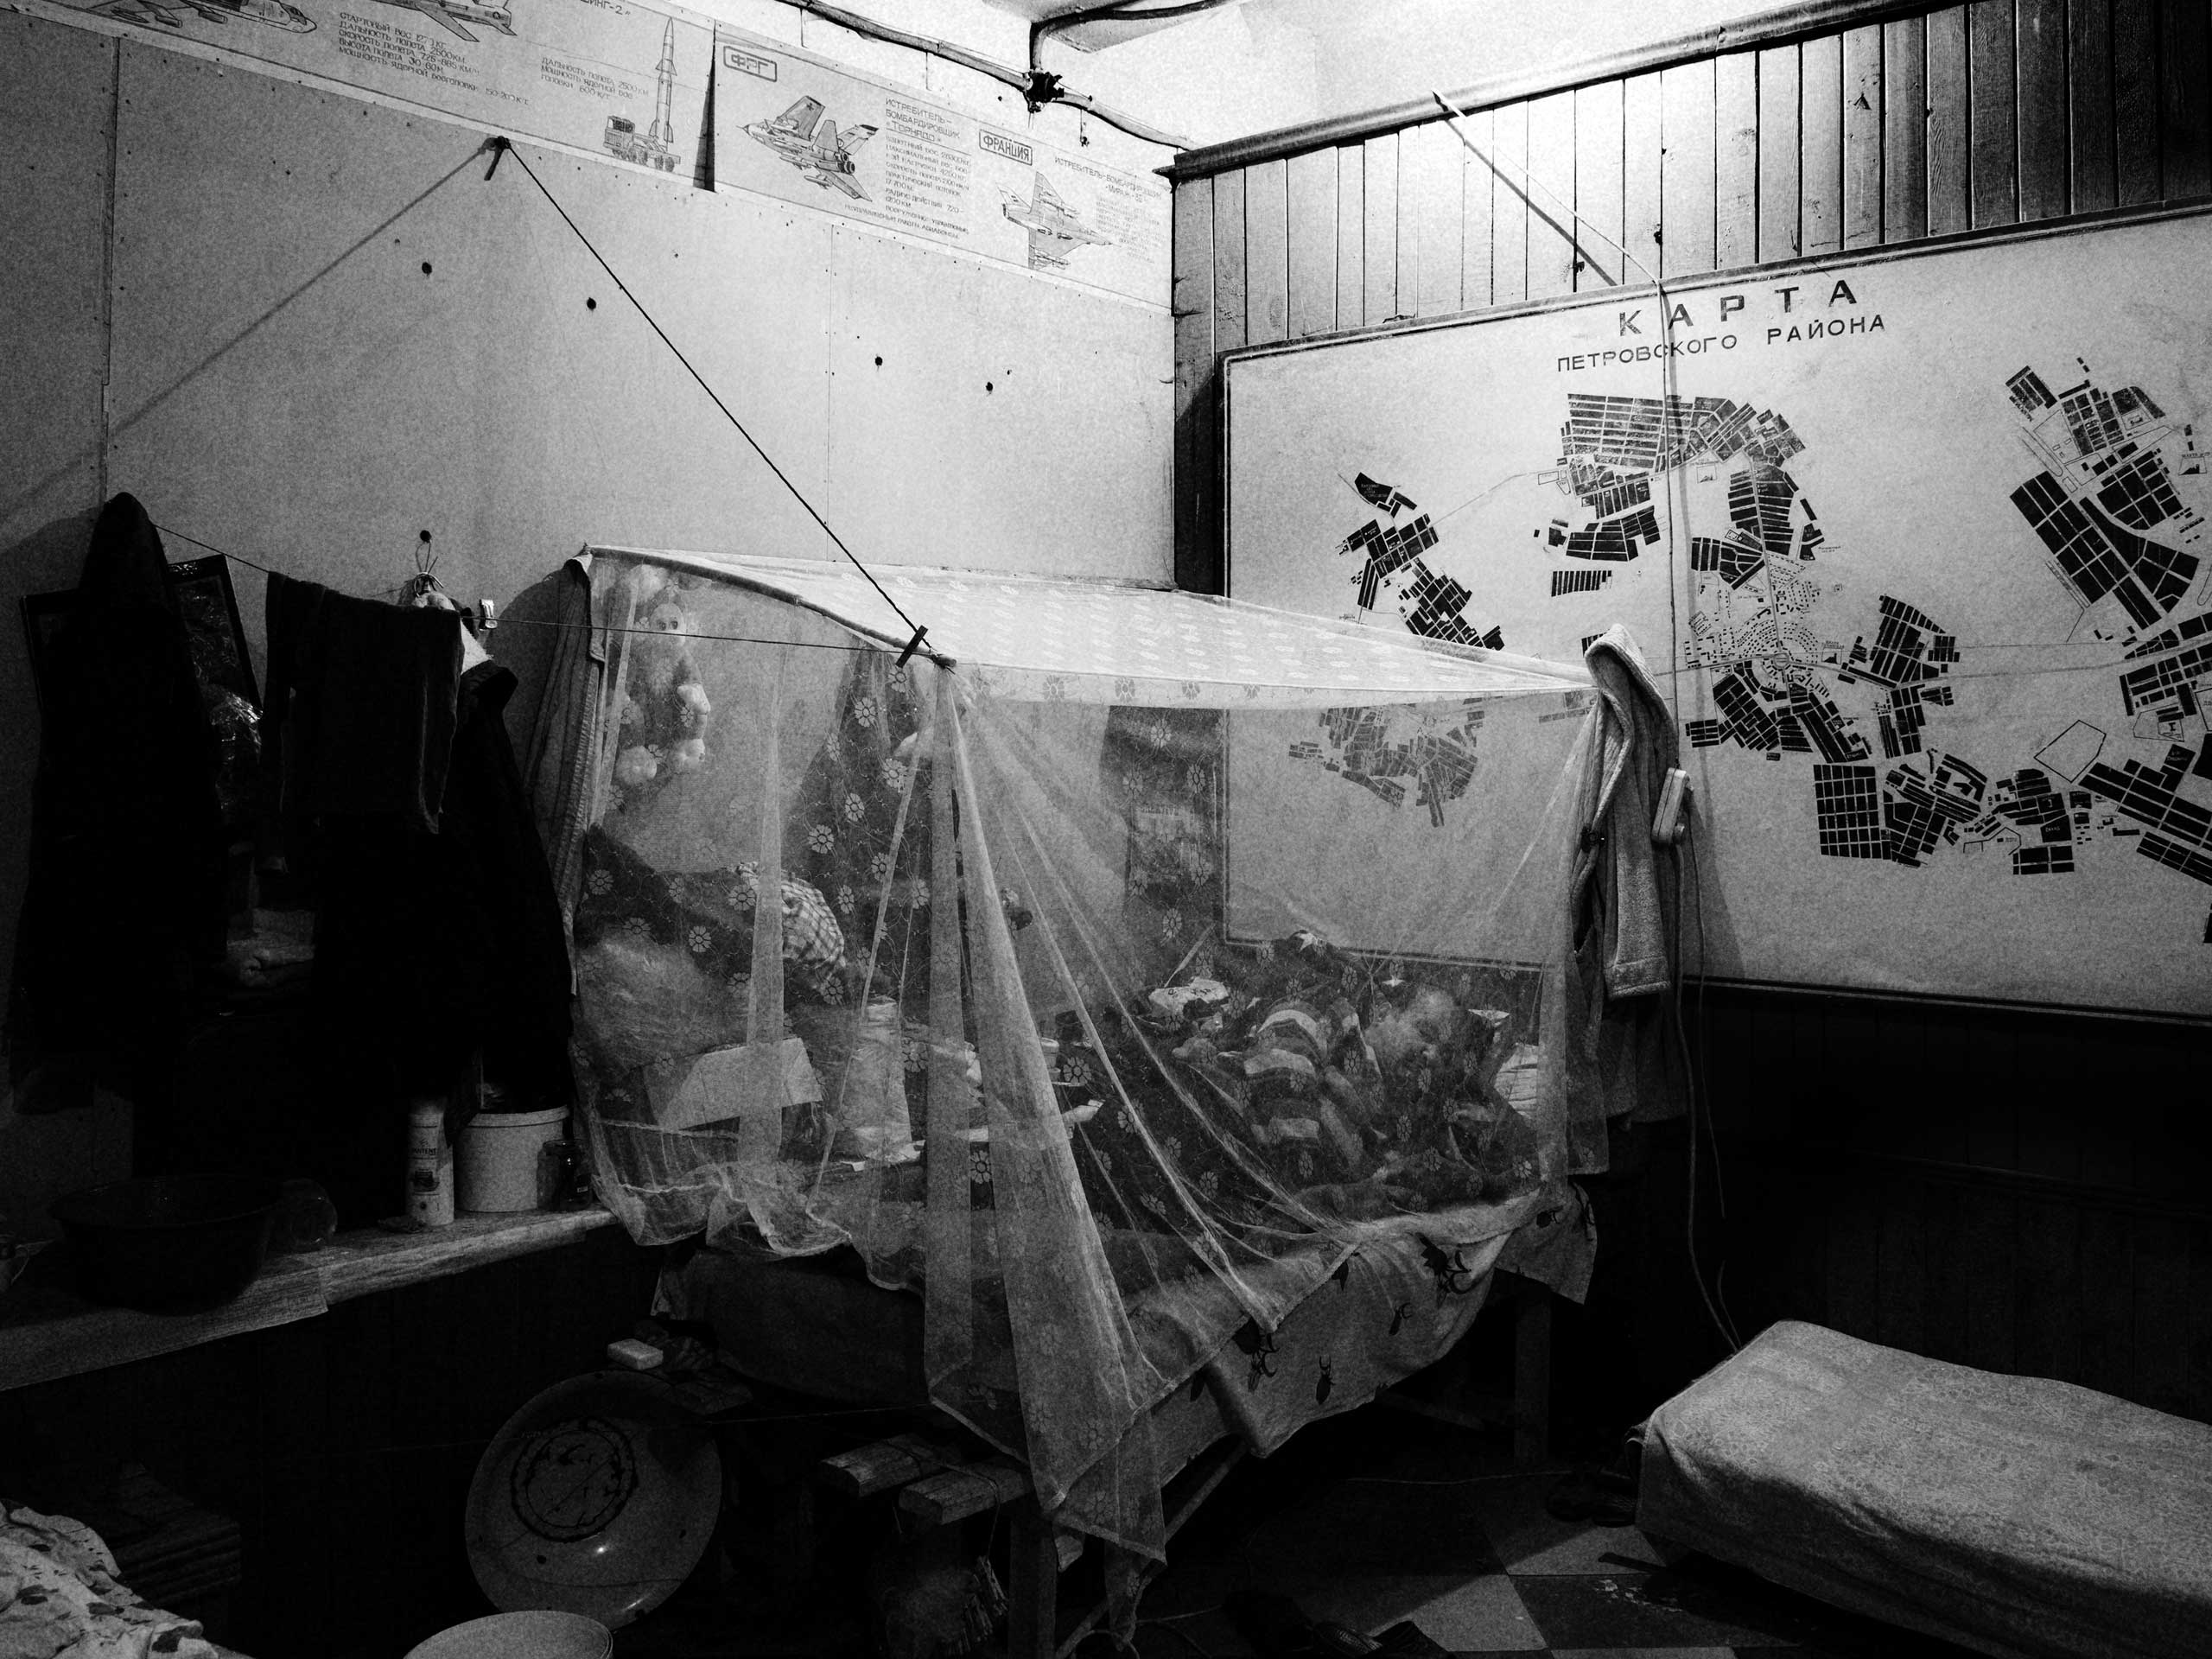 Aslanova is  deaf and mute and lives with his wife, two of their grandchildren and their dog in the shelter in Trudovski. He rests in a mosquito net under images of foreign fighter planes that signs warn are responsible for potential attacks and a map of the Trudovski region. Trudovski, Donetsk Oblast, Ukraine. Oct. 31, 2014.